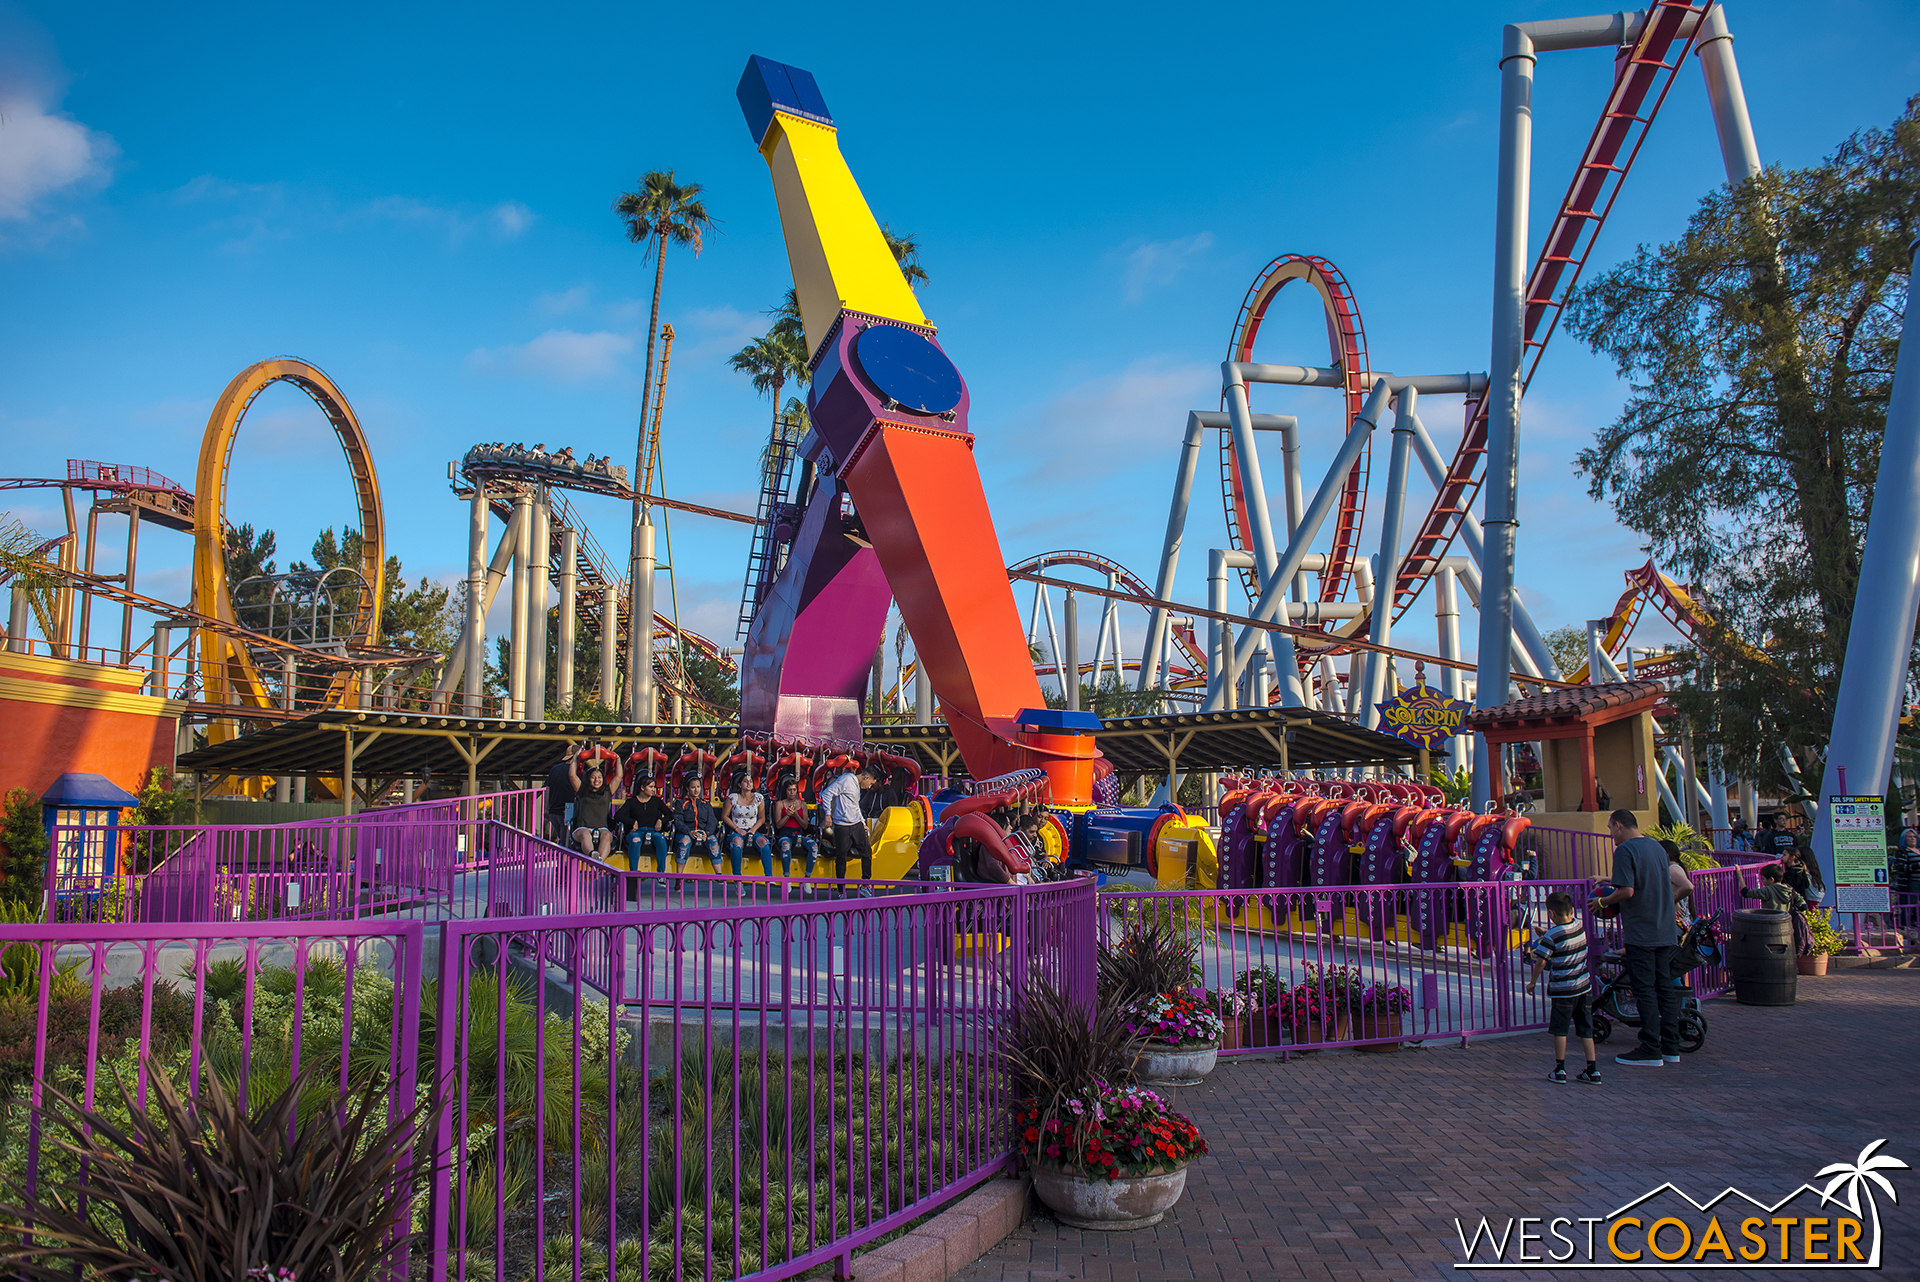 Also, Sol Spin seems to have evaded the Curse of Windjammer.  It's a very fun ride.